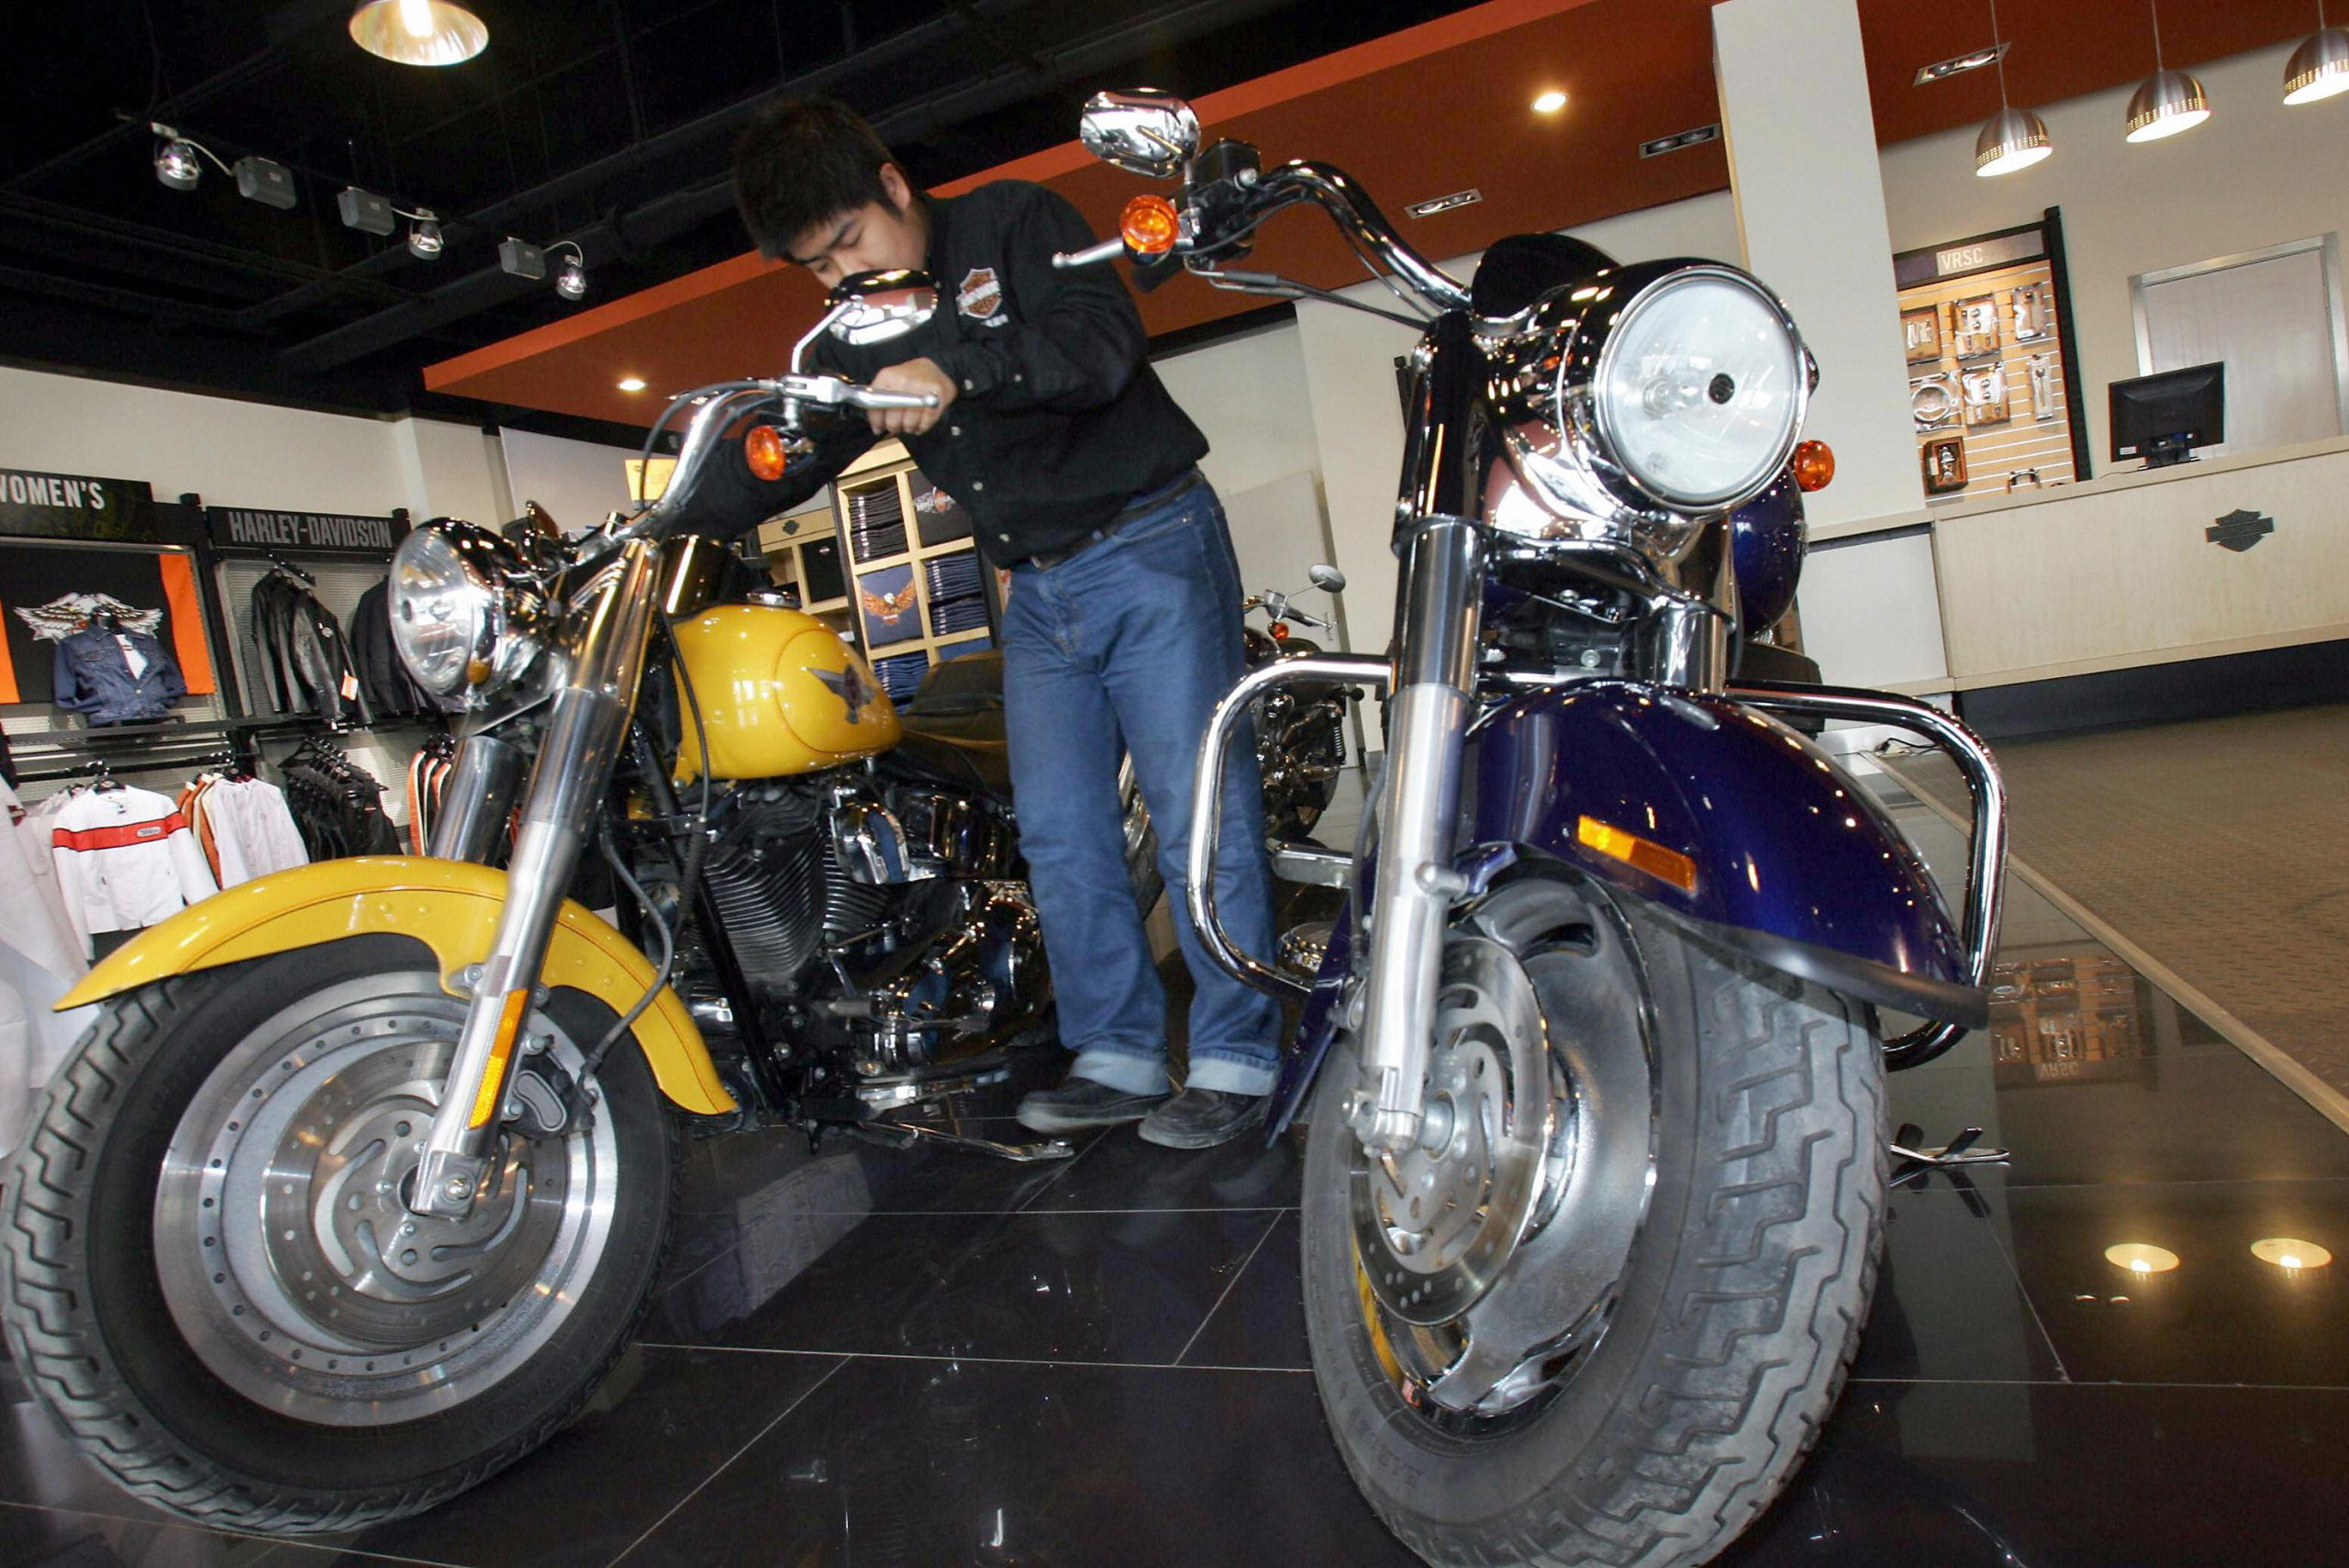 A salesman arranges one of the Harley-Davidson's bikes on display